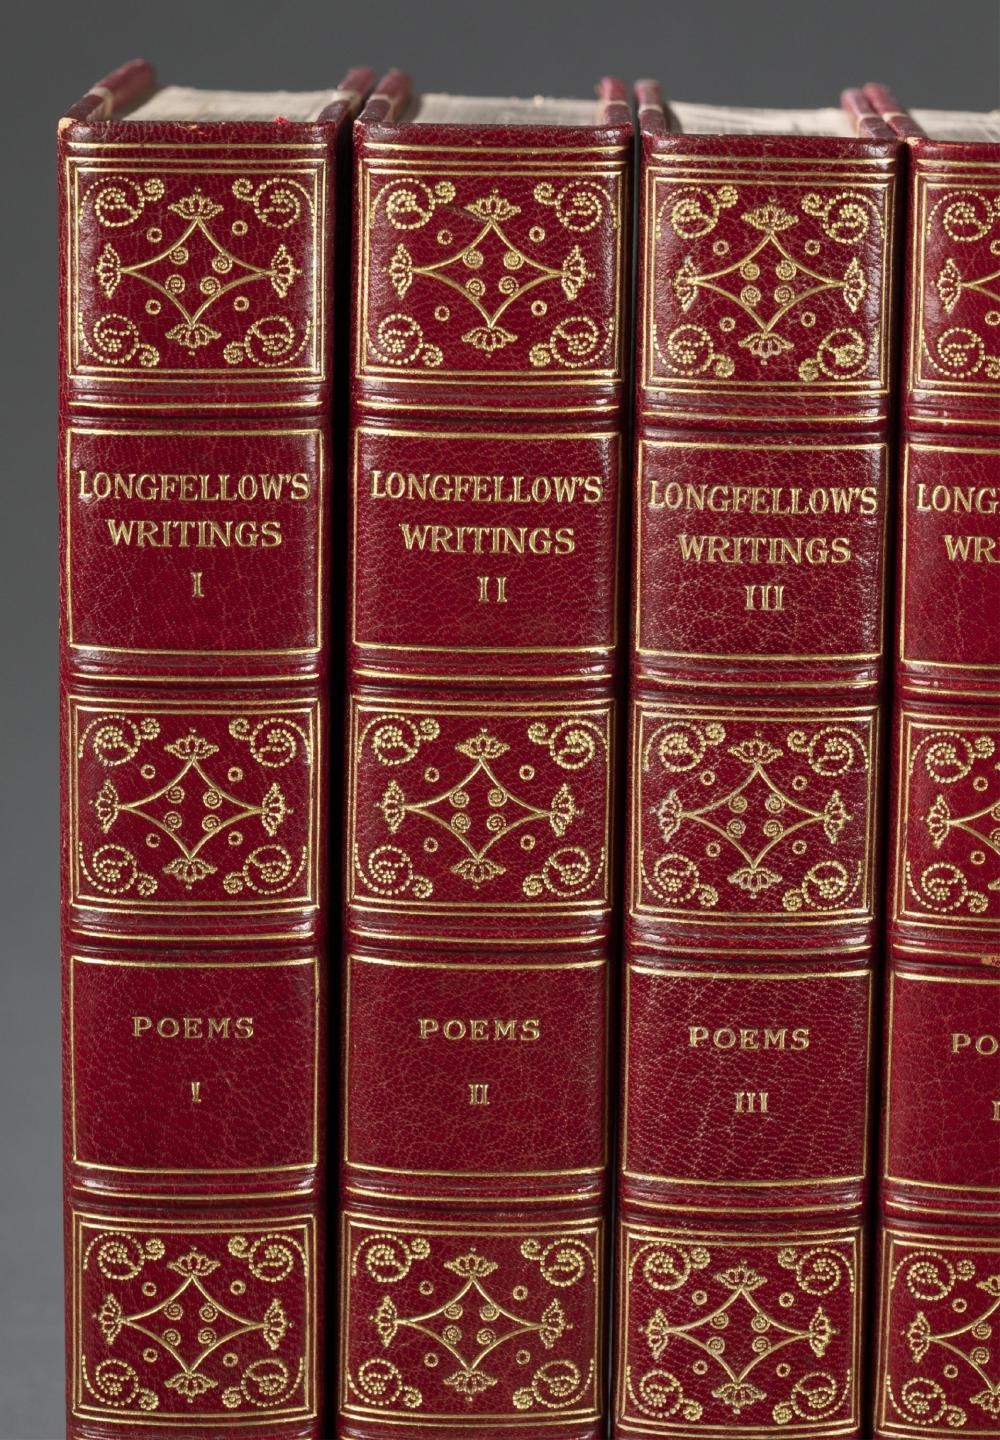 Lot 172: Longfellow. The Complete Works. 11 vols. 1904.